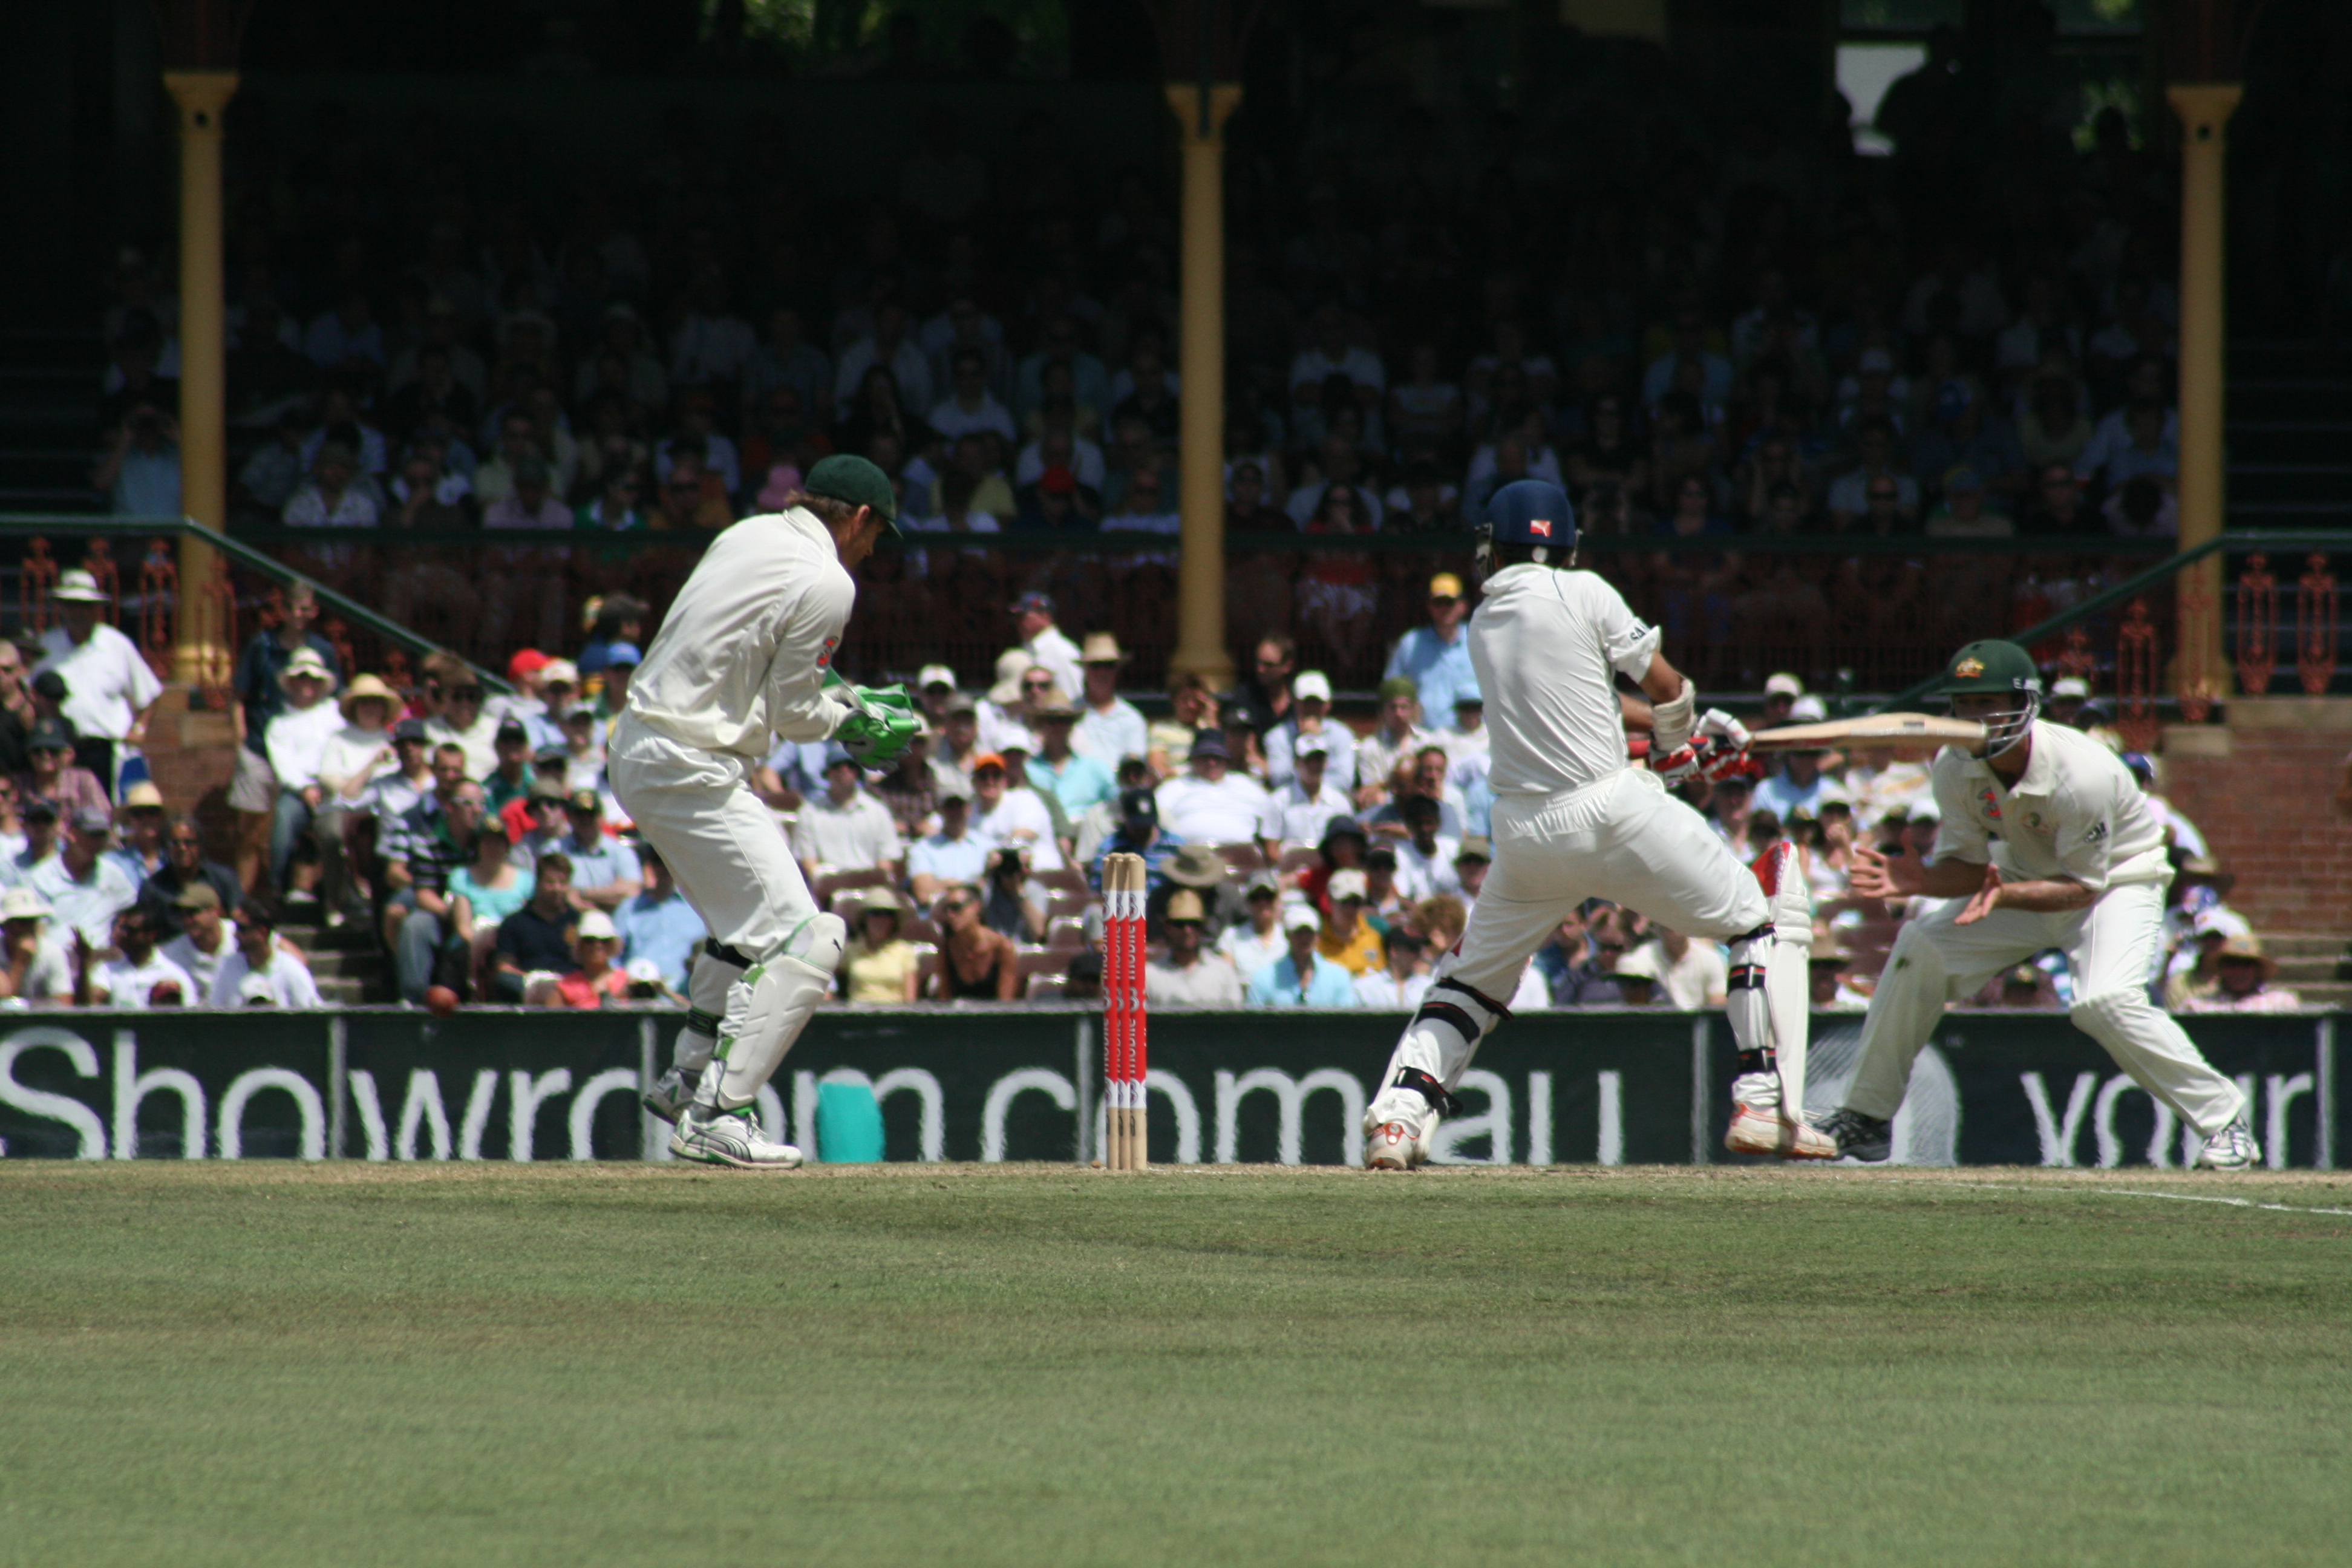 A cricket match being held. The batsman hits the ball and the other players try to catch it. The green field and the audience are visible in the far.